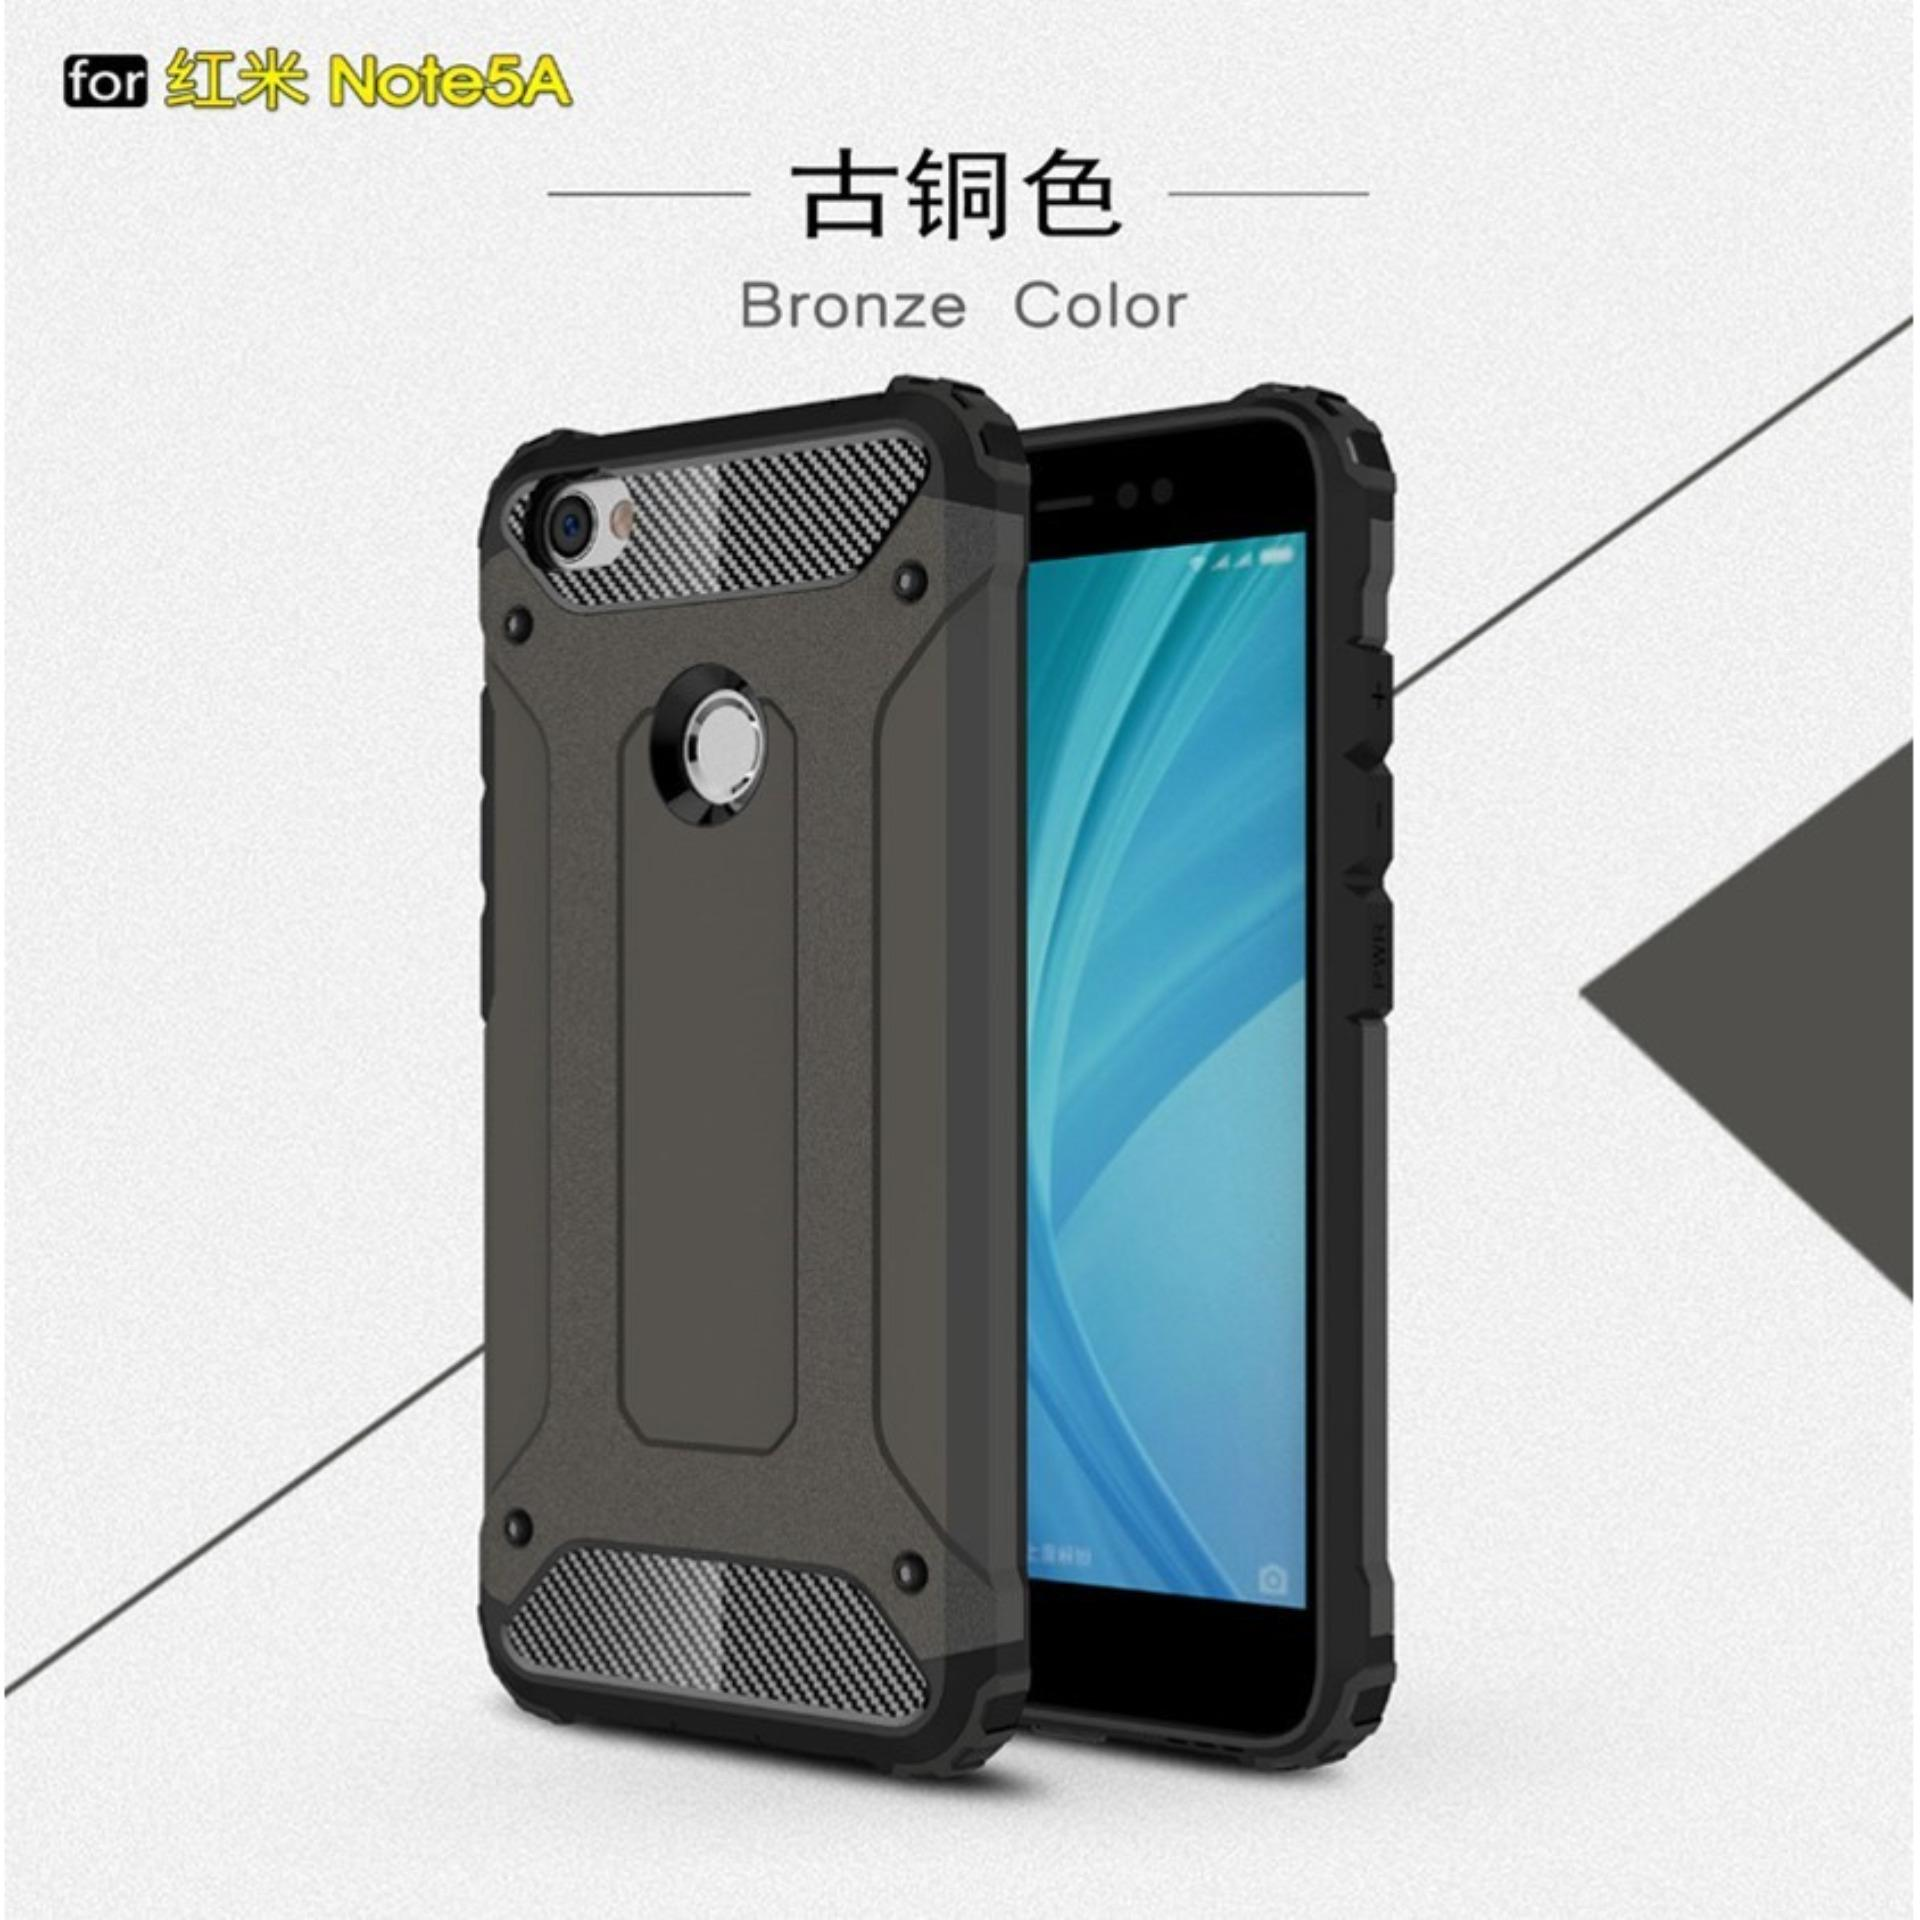 Case Hard Cover Robot Shockproof Armor For Xiaomi Redmi Note 5A- Black